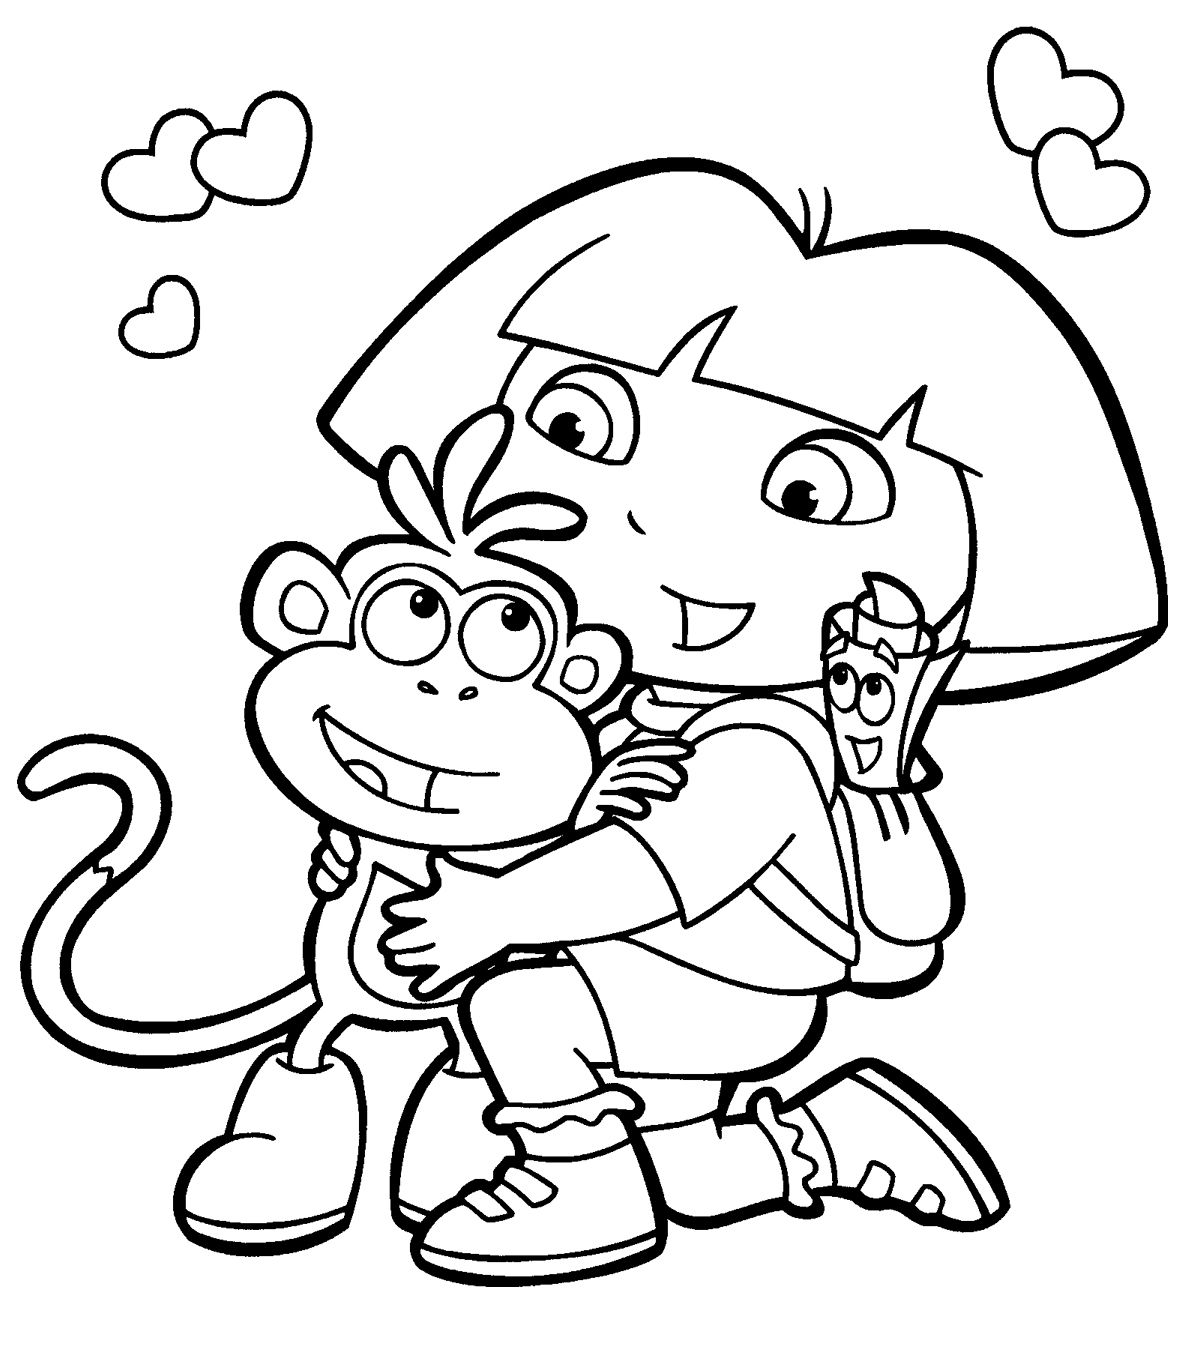 coloring book pages Free Nickjrs Dora the Explorer Coloring